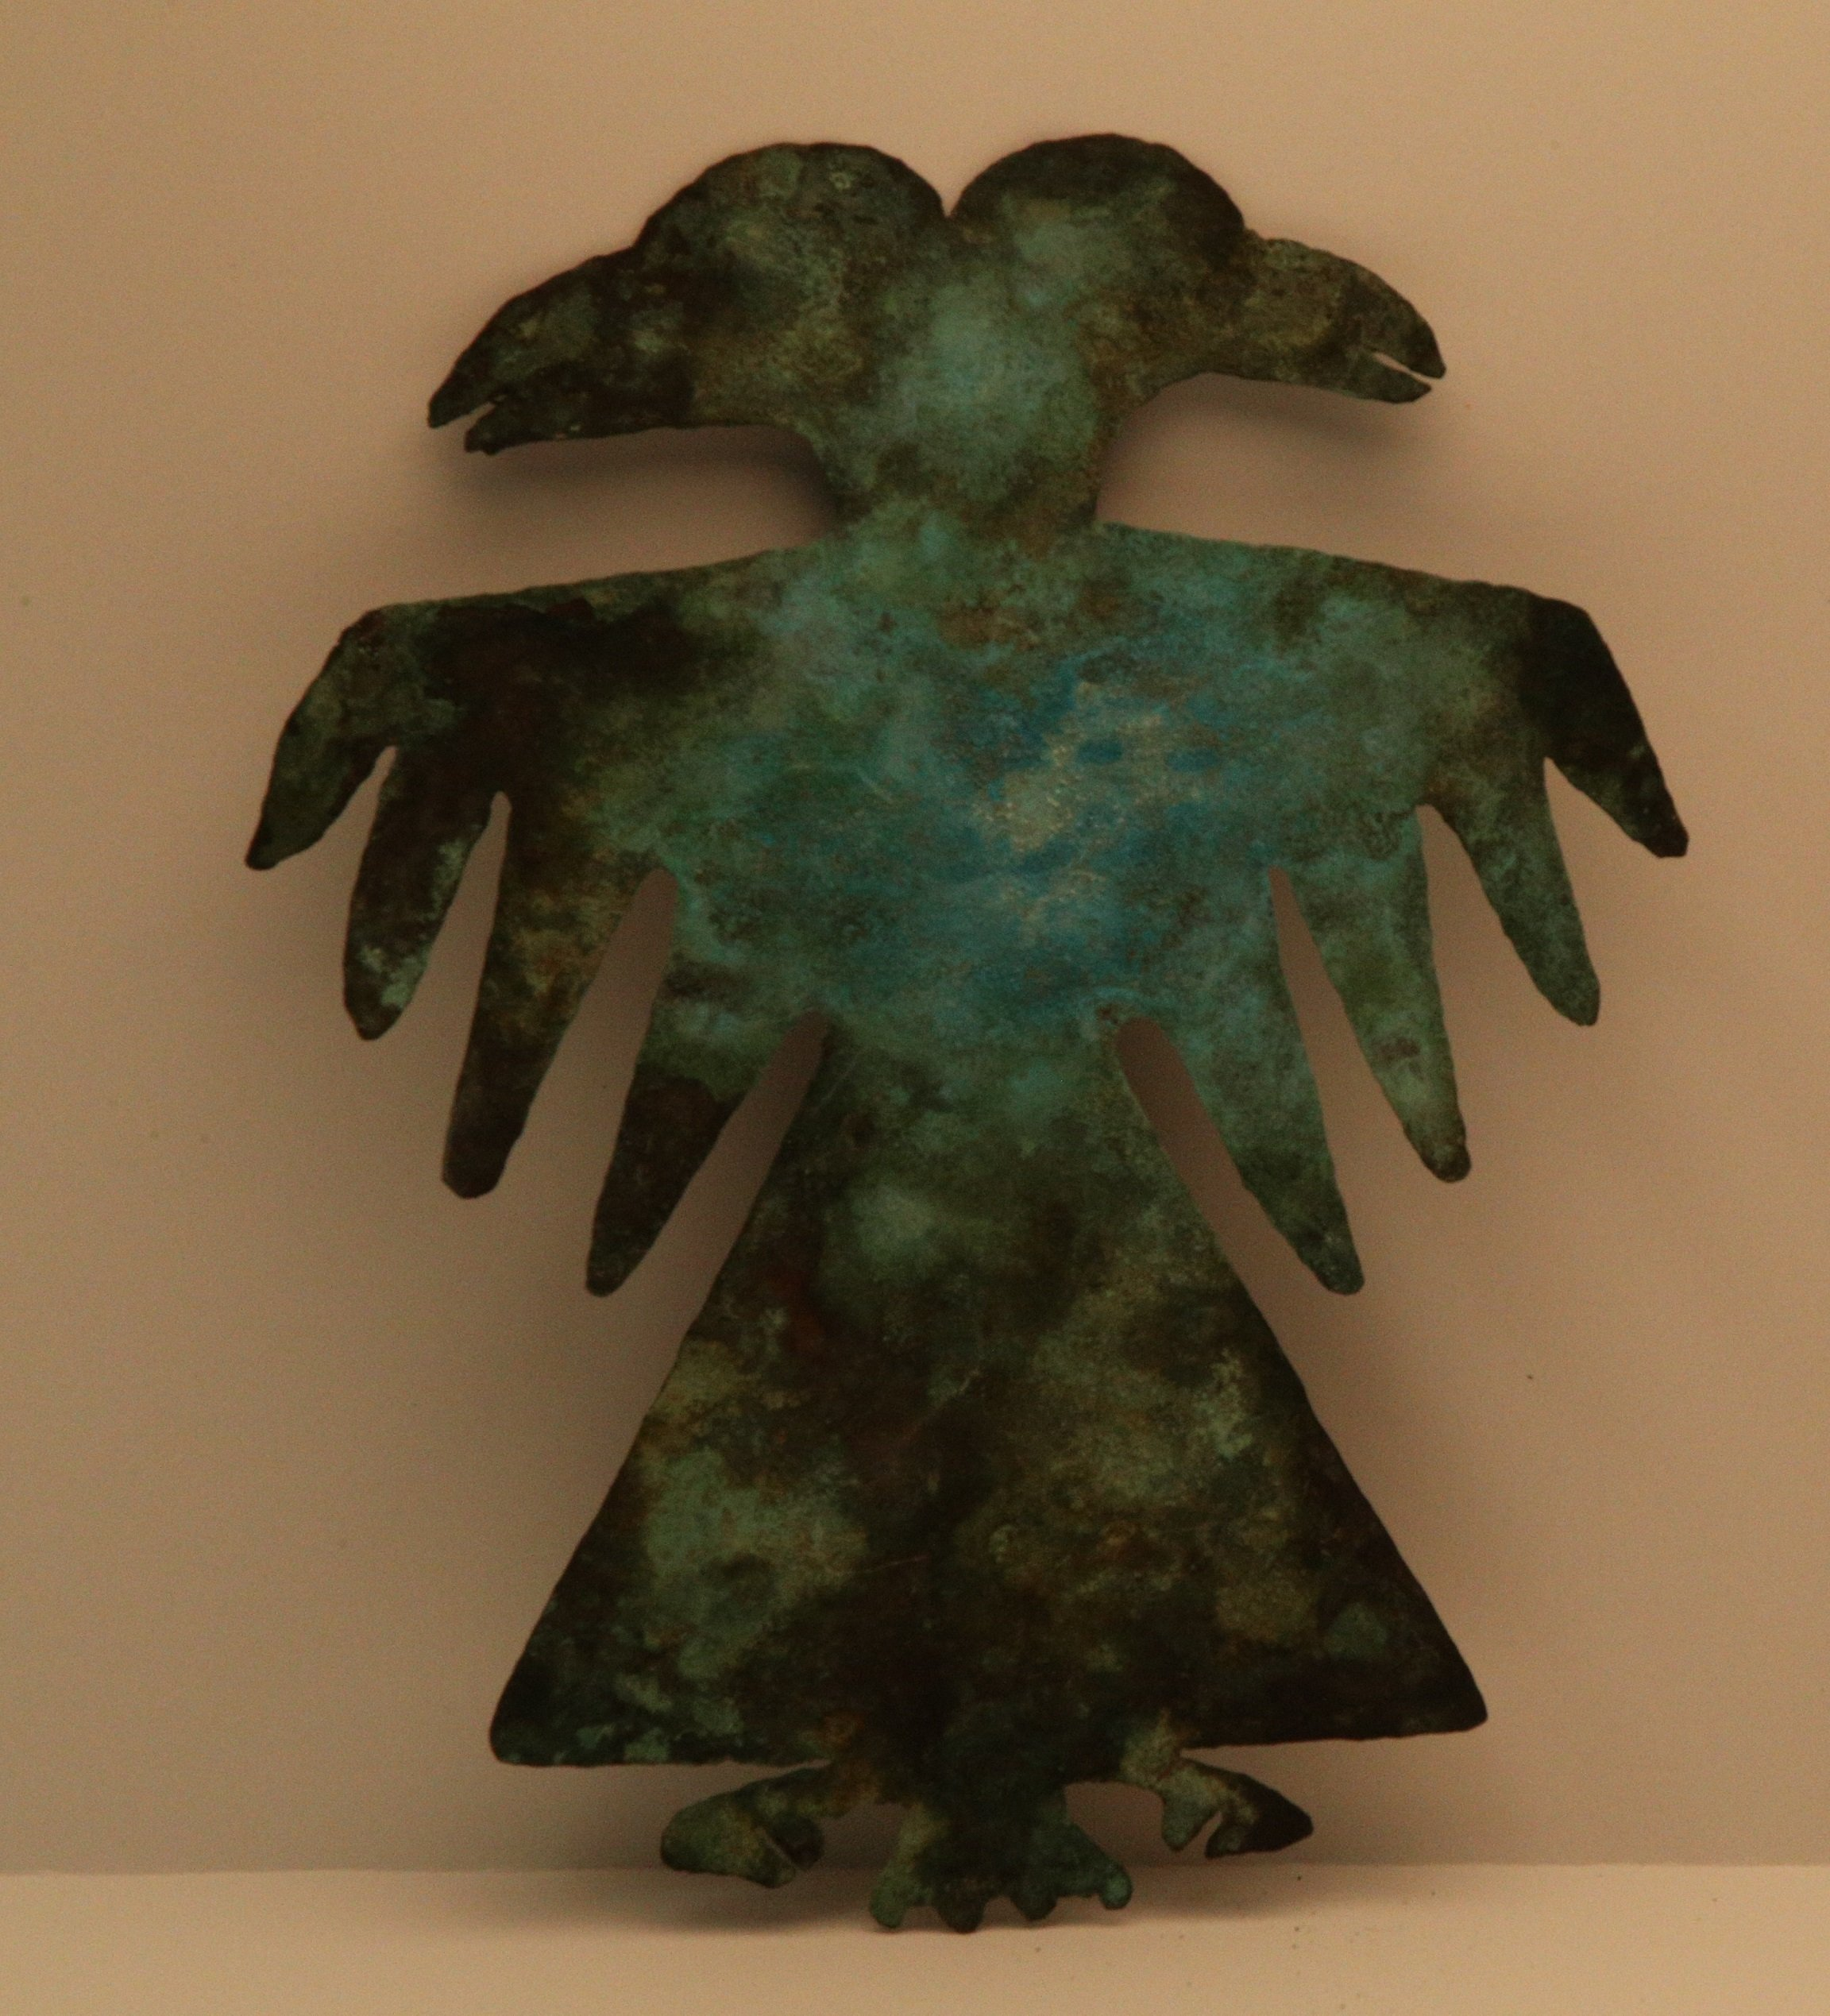 Pictured is a double headed copper bird effigy. Avian themed copper plates were thought to depict aspects of The Birdman, a major figure in Mississippian iconography closely associated with warfare and ritual dancing